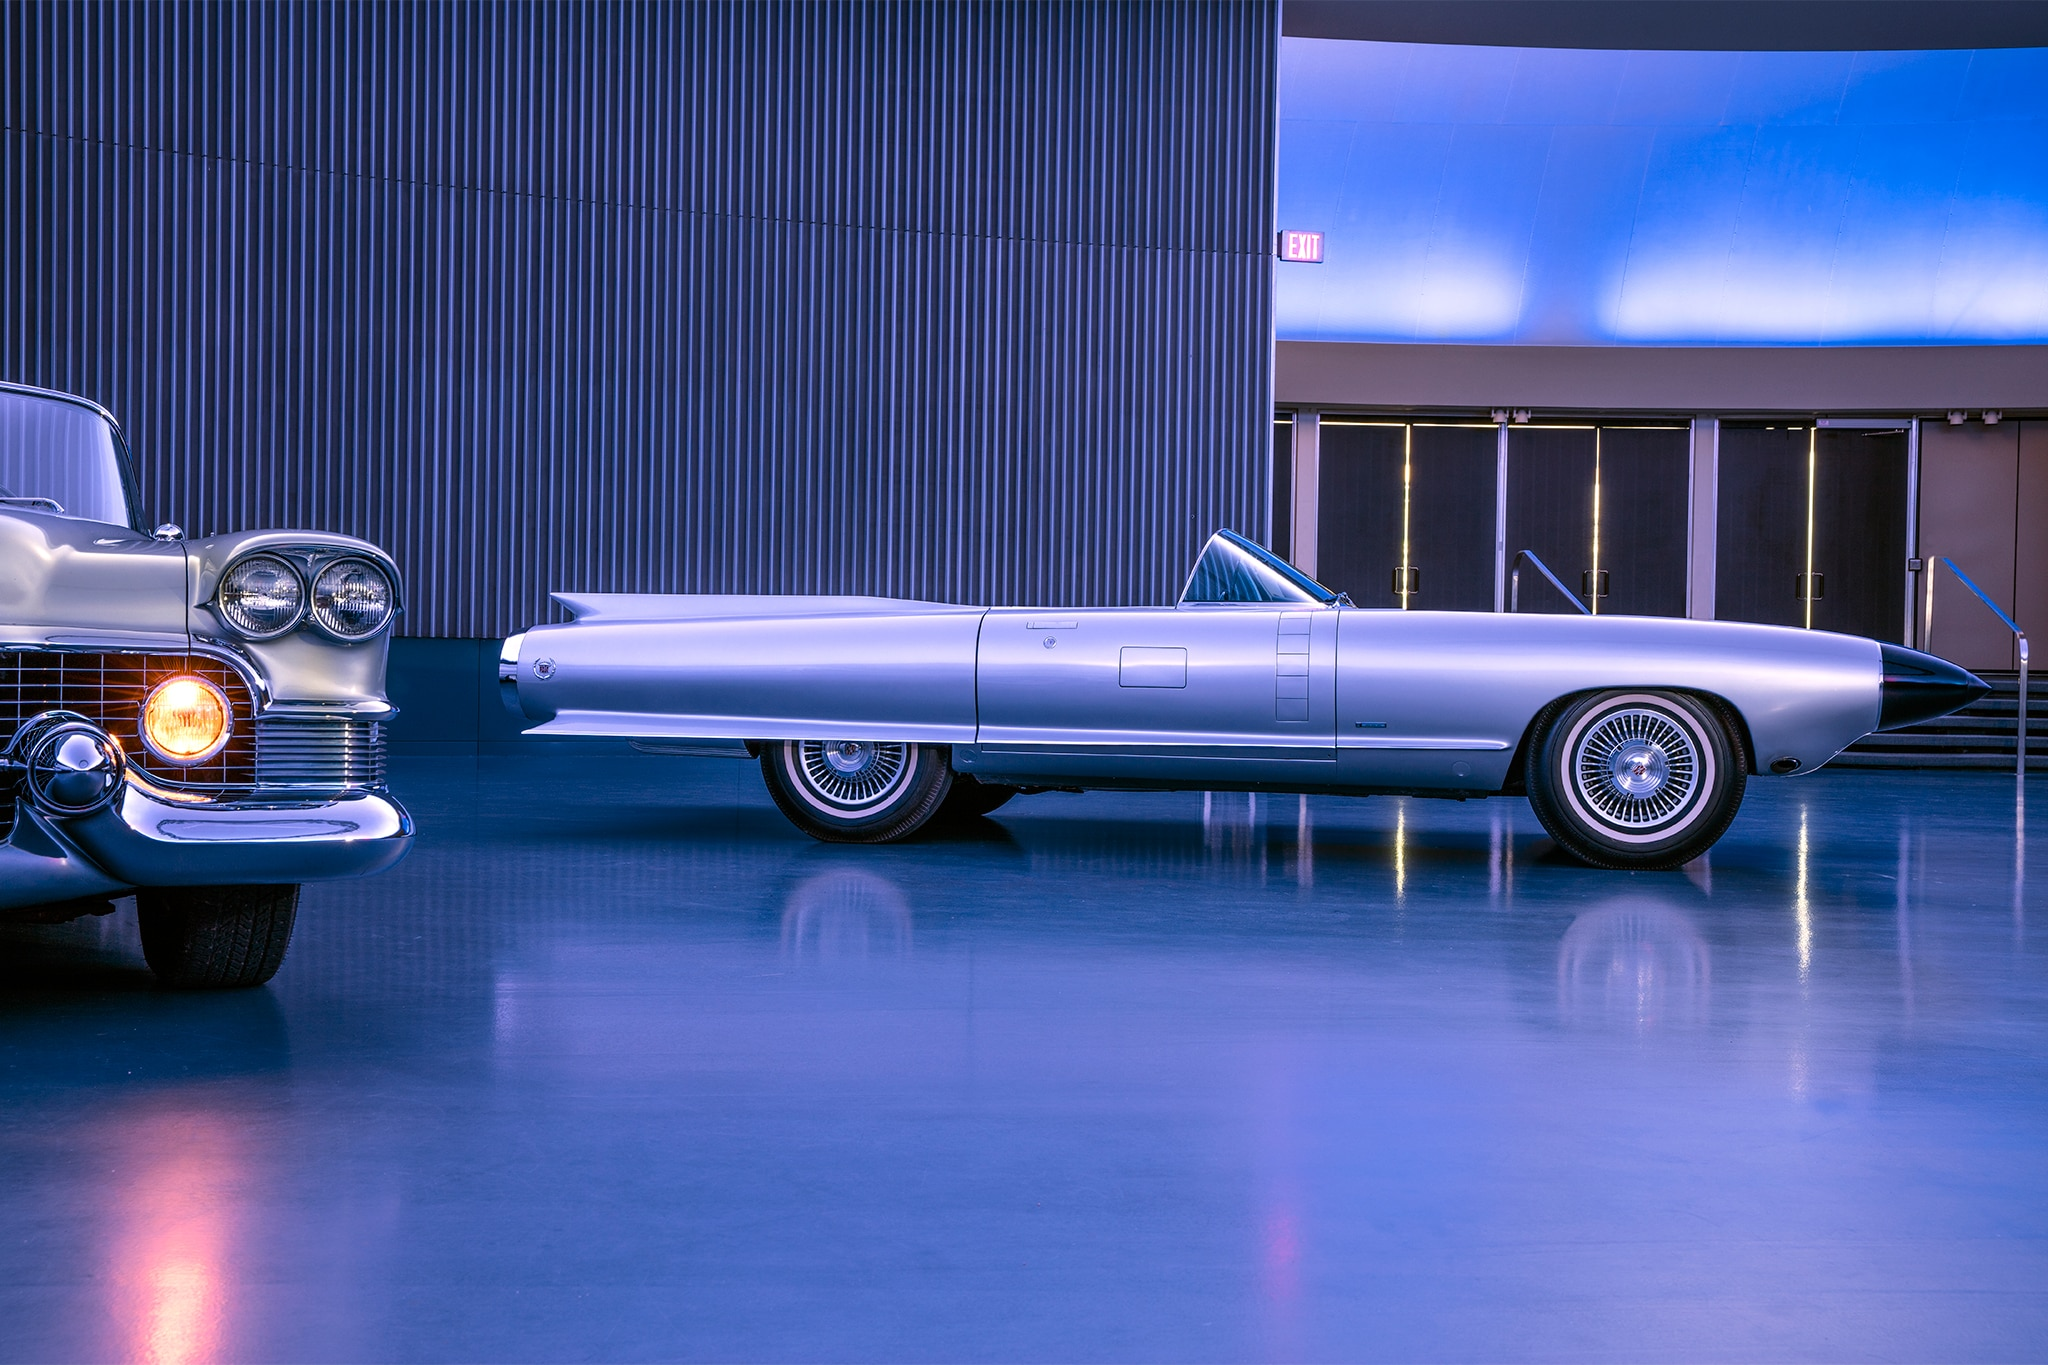 http://st.automobilemag.com/uploads/sites/11/2016/11/Cadillac-Cyclone-side-profile.jpg